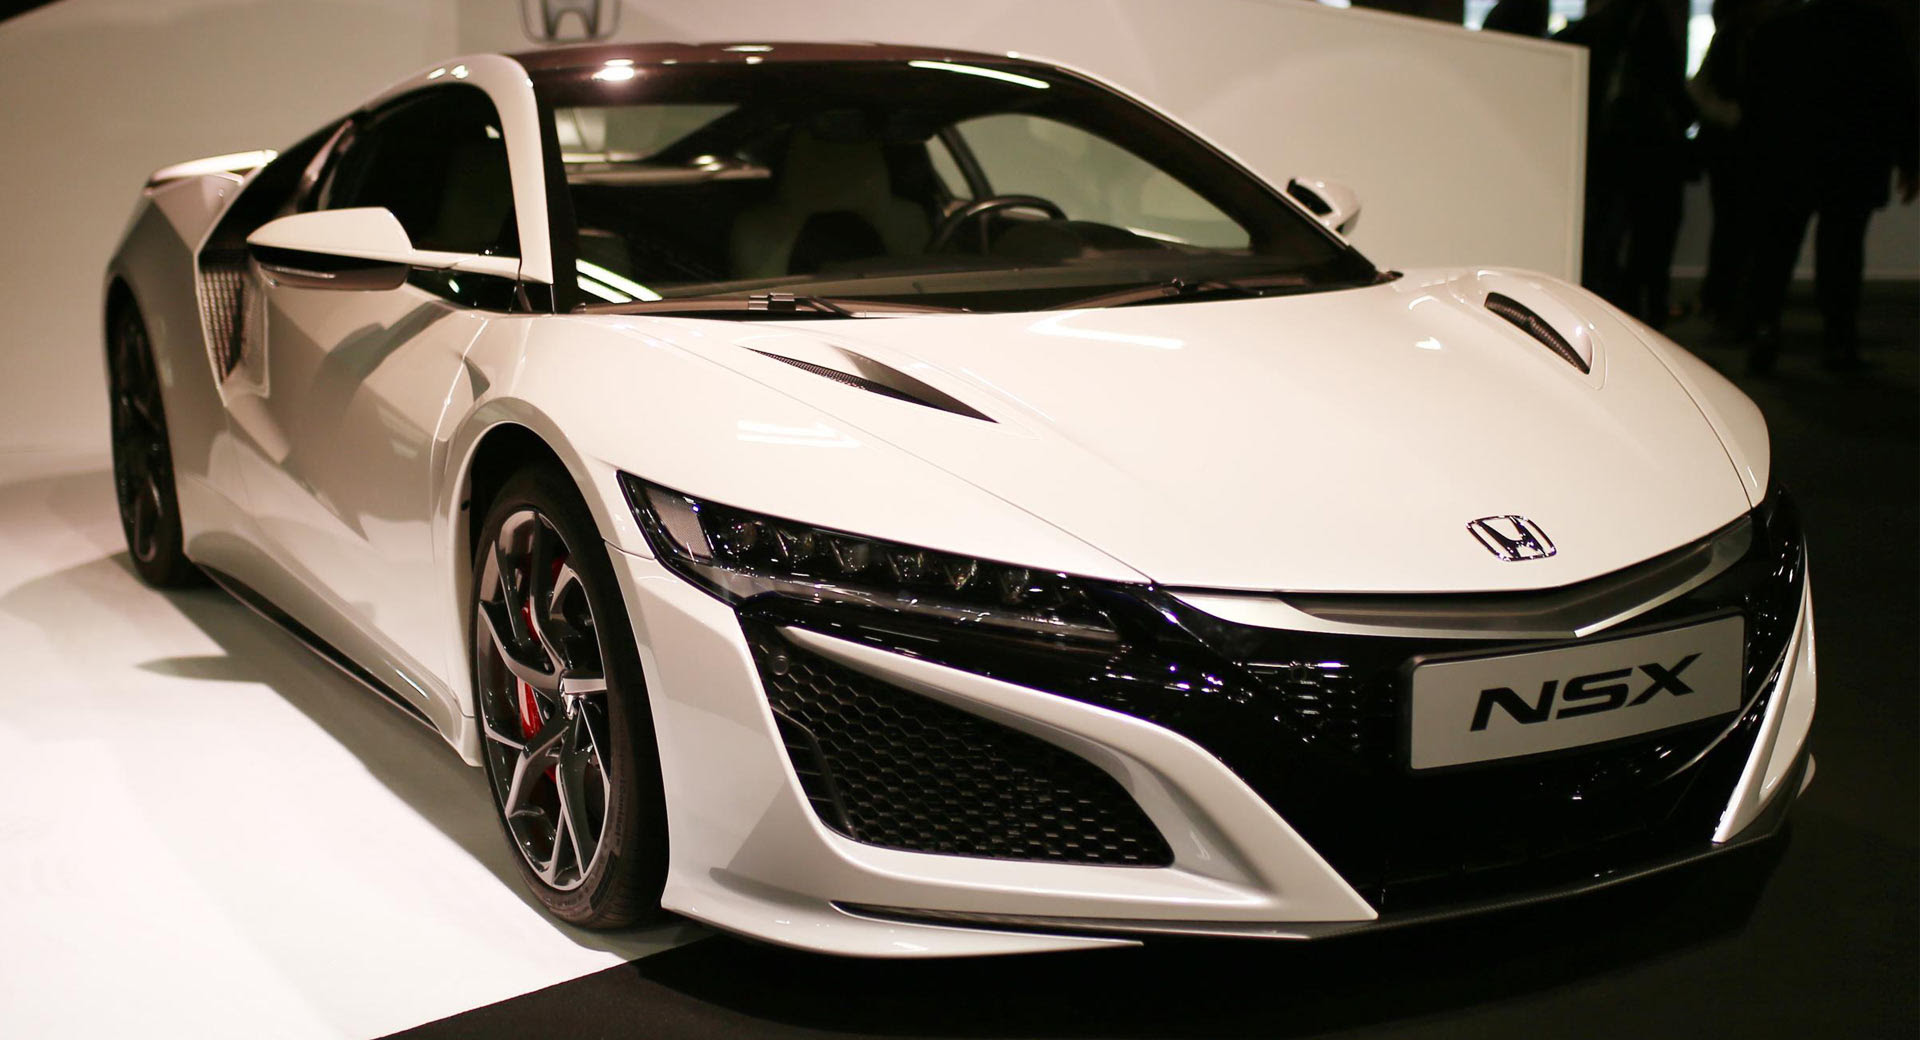 2019 Honda Nsx Gets Performance Updates Ahead Of Launch Later This Year Carscoops